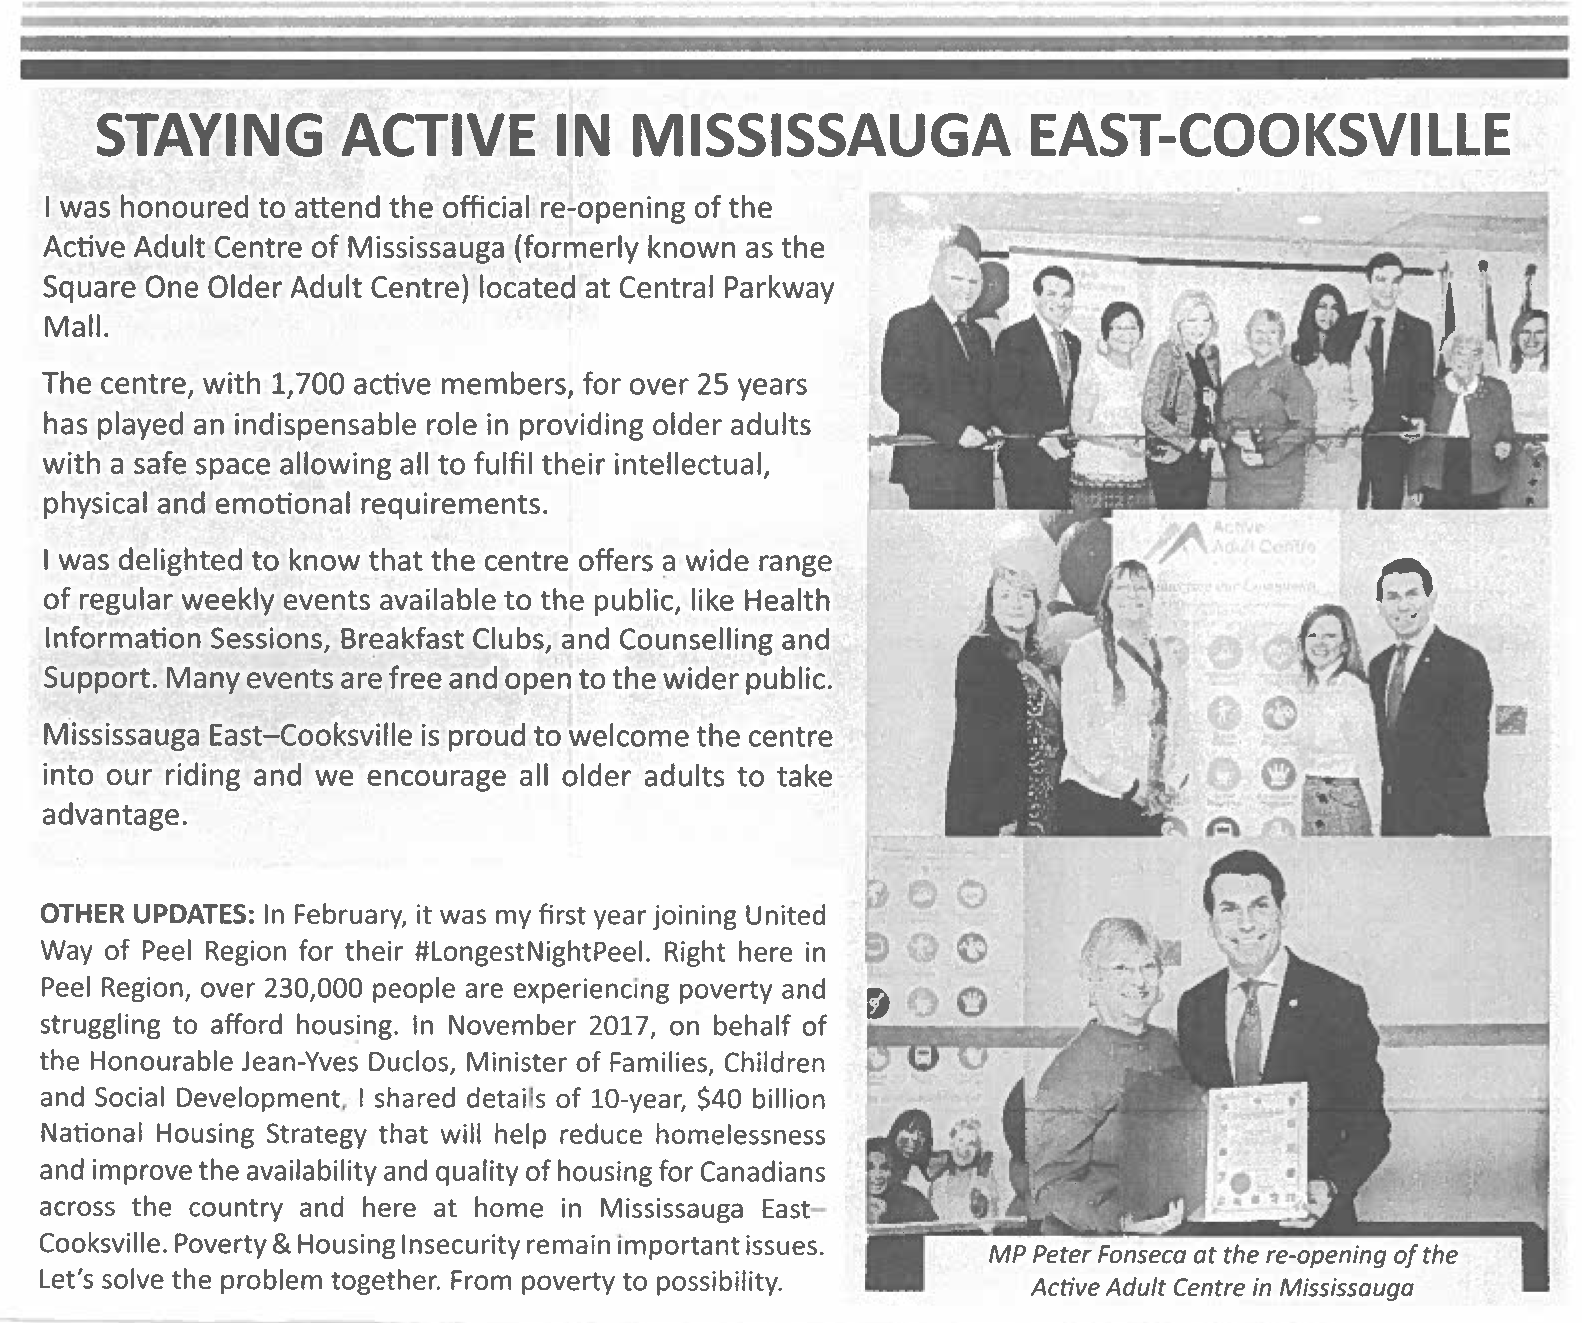 Peter Fonseca - Member of Parliament - Mississauga East-Cooksville | Spring 2018 Newsletter